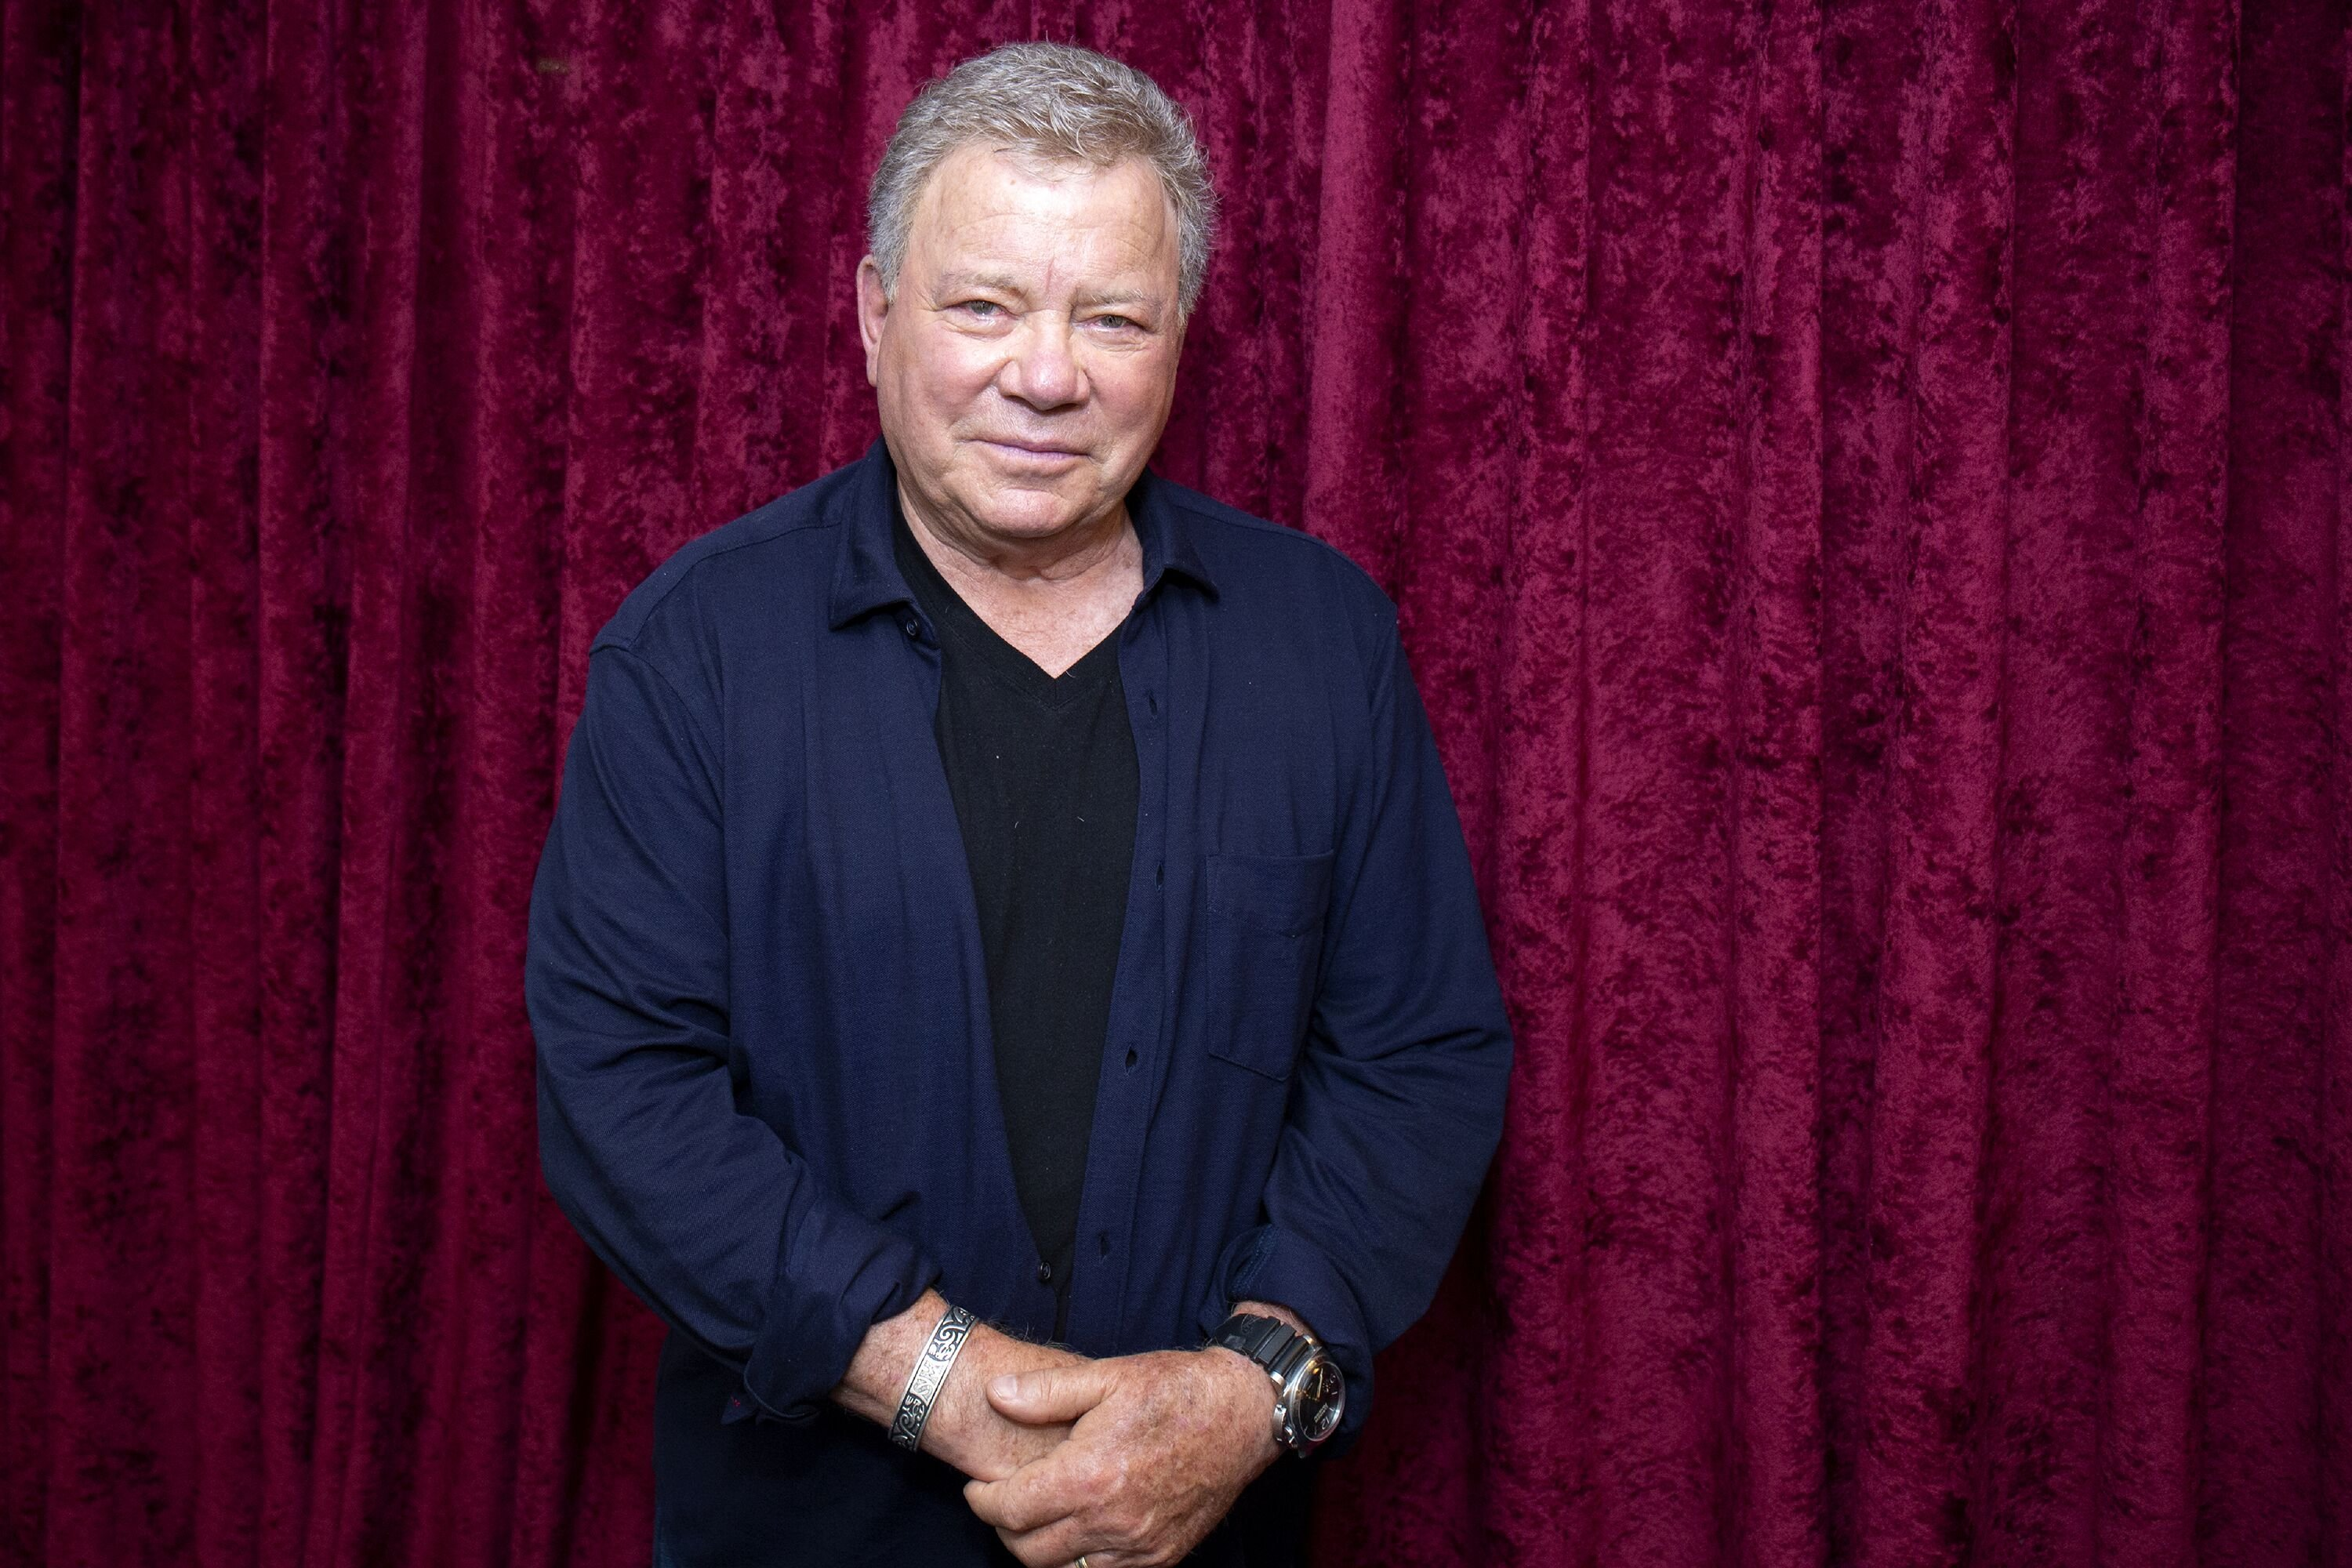 William Shatner at SiriusXM Studios, New York City on September 6, 2018. | Source: Getty Images